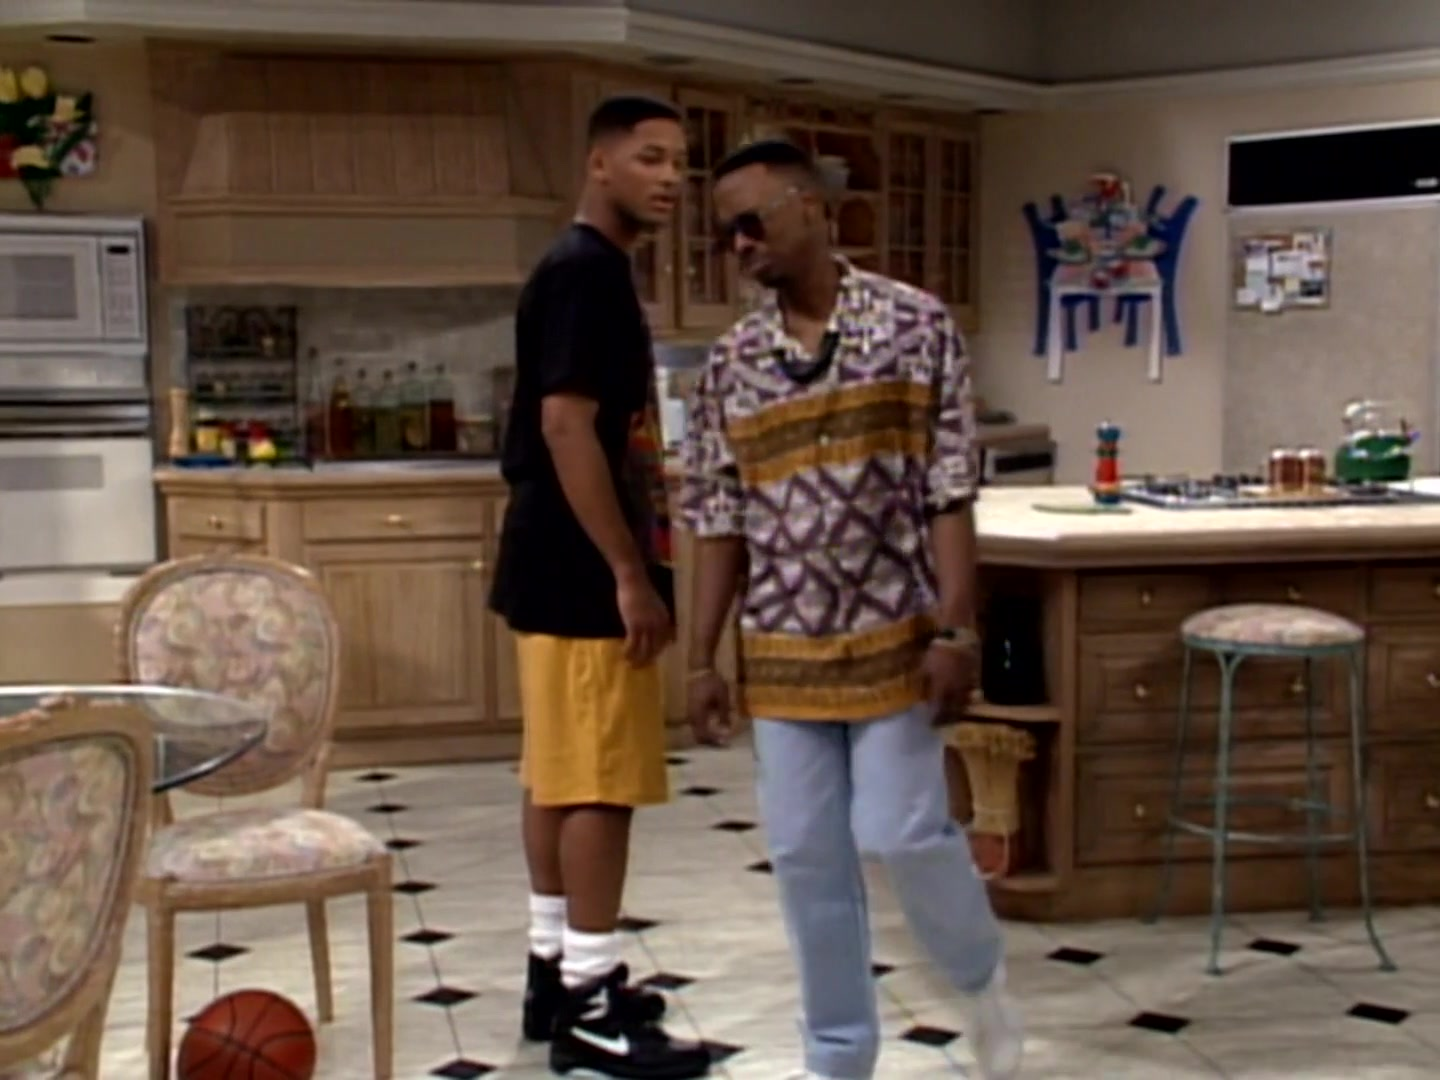 Nike Black Shoes Of Will Smith In The Fresh Prince Of Bel Air S03e07 Here Comes The Judge 1992